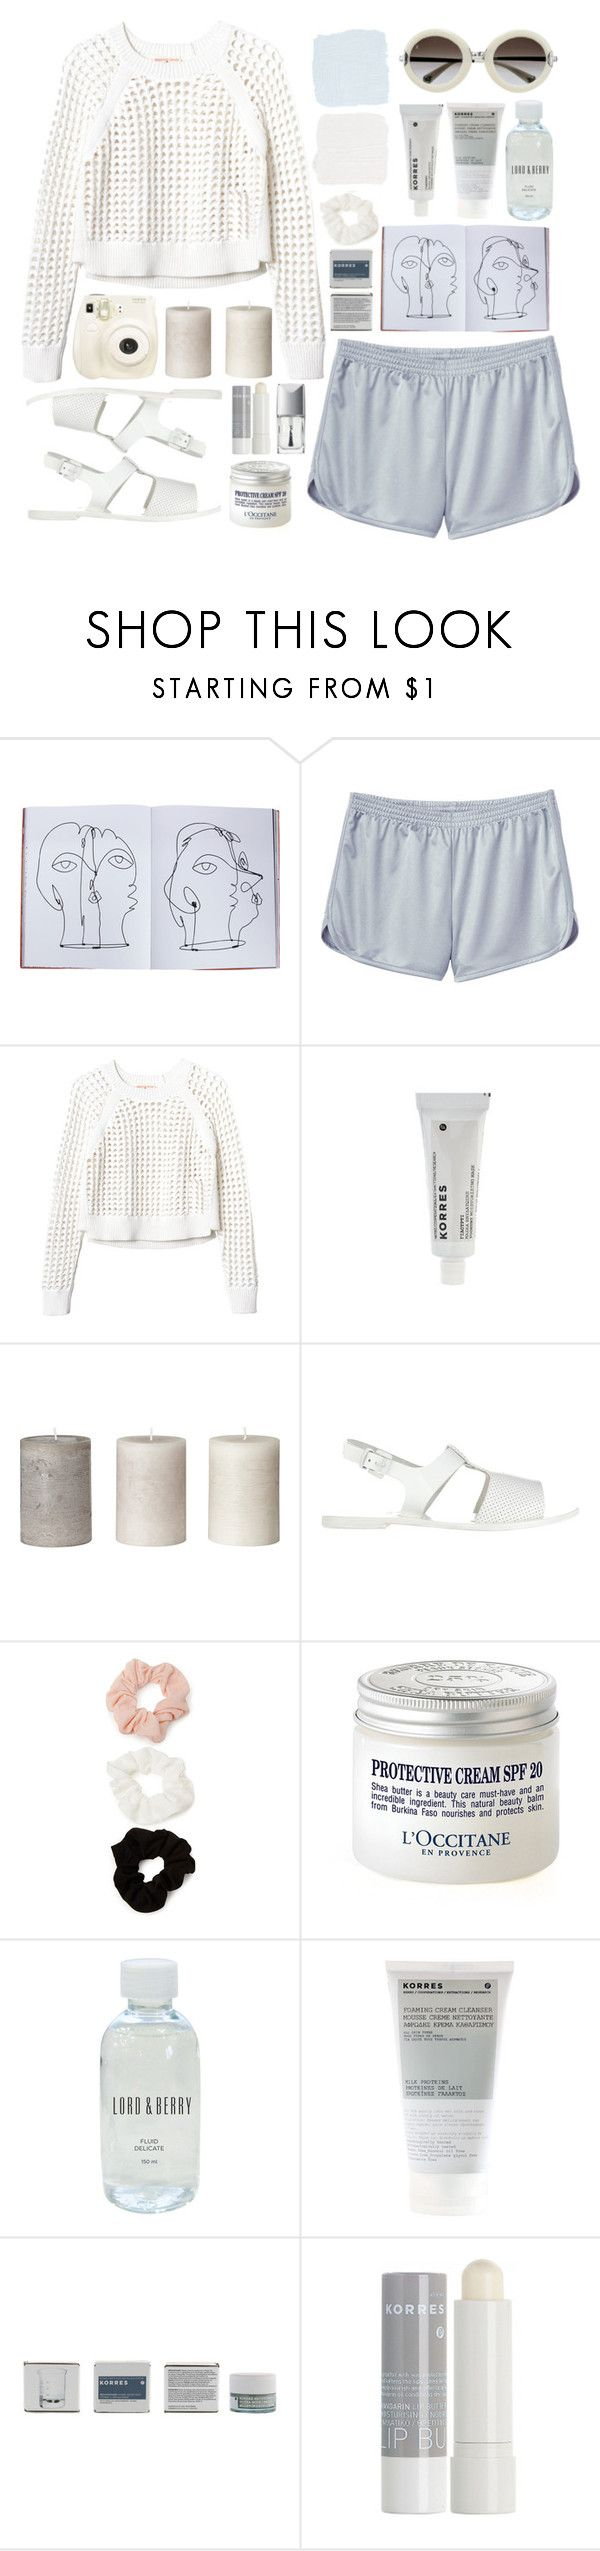 """Young Folks"" by nikka-solatorio ❤ liked on Polyvore featuring Polaroid, Assouline Publishing, Monki, Louis Vuitton, Rebecca Taylor, Korres, Sol Sana, Forever 21, L'Occitane and Lord & Berry"